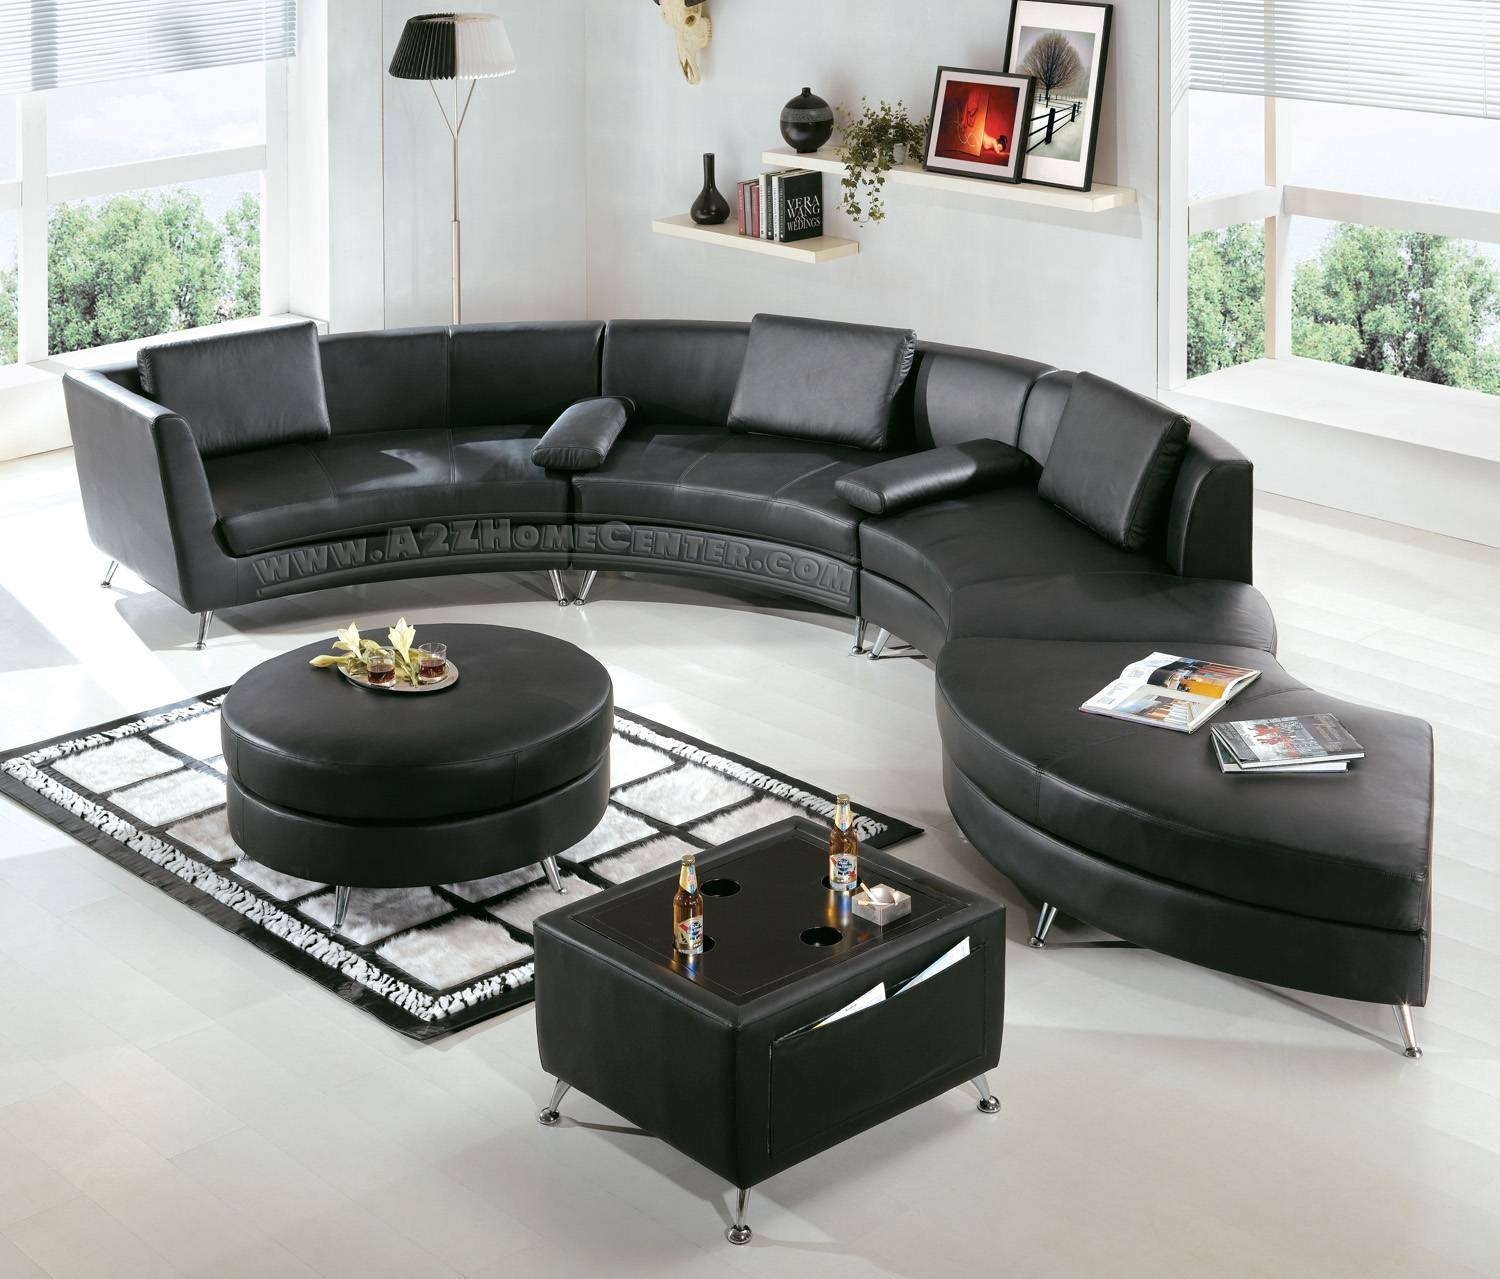 Modern Black Leather Sectional Sofa: Beautiful Pictures, Photos Of pertaining to Black Modern Couches (Image 12 of 15)